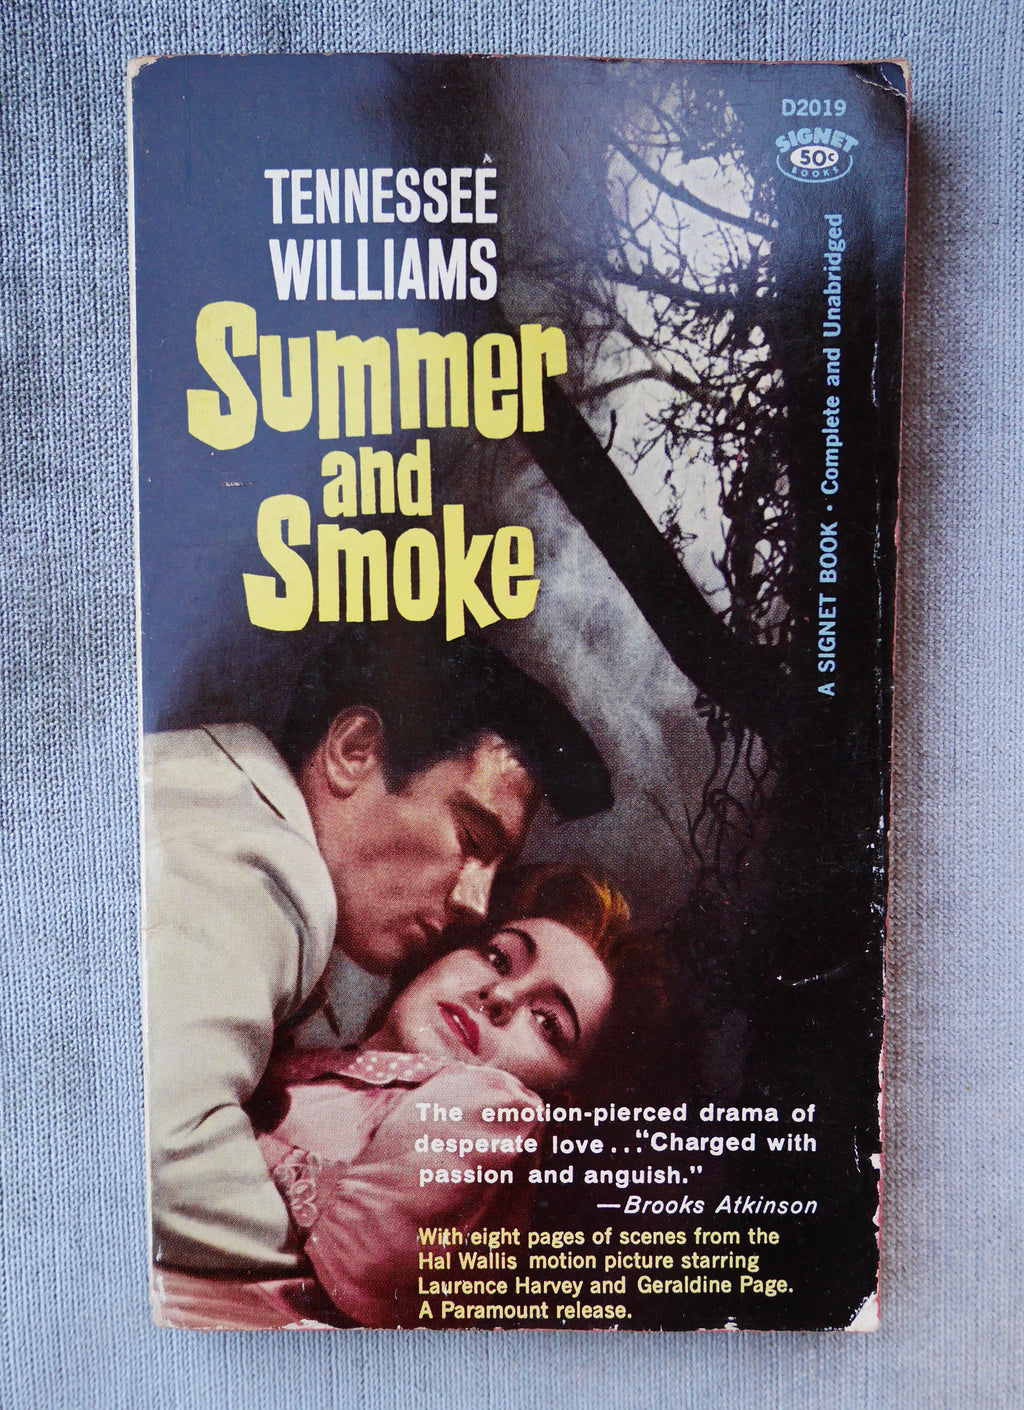 Tennessee Williams, Summer and Smoke, Signet, 1961, Movie Tie-In Paperback